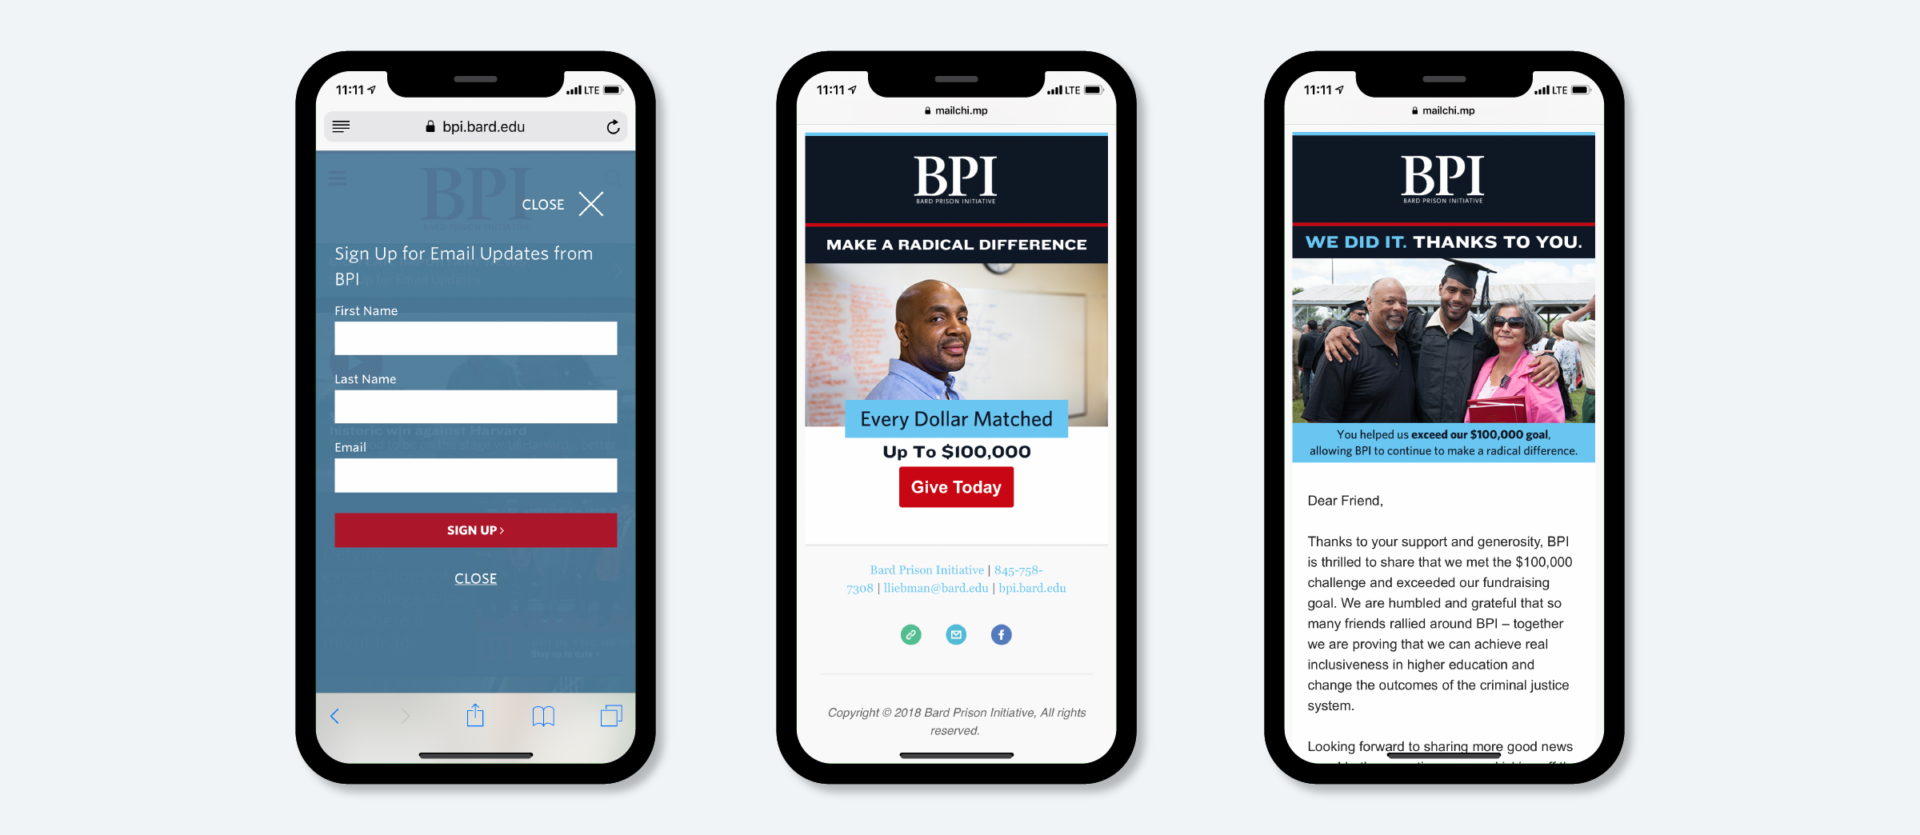 Three iPhones displaying the BPI email list signup screen, an eBlast promoting a giving campaign, and a second eBlast thanking donors for their support.